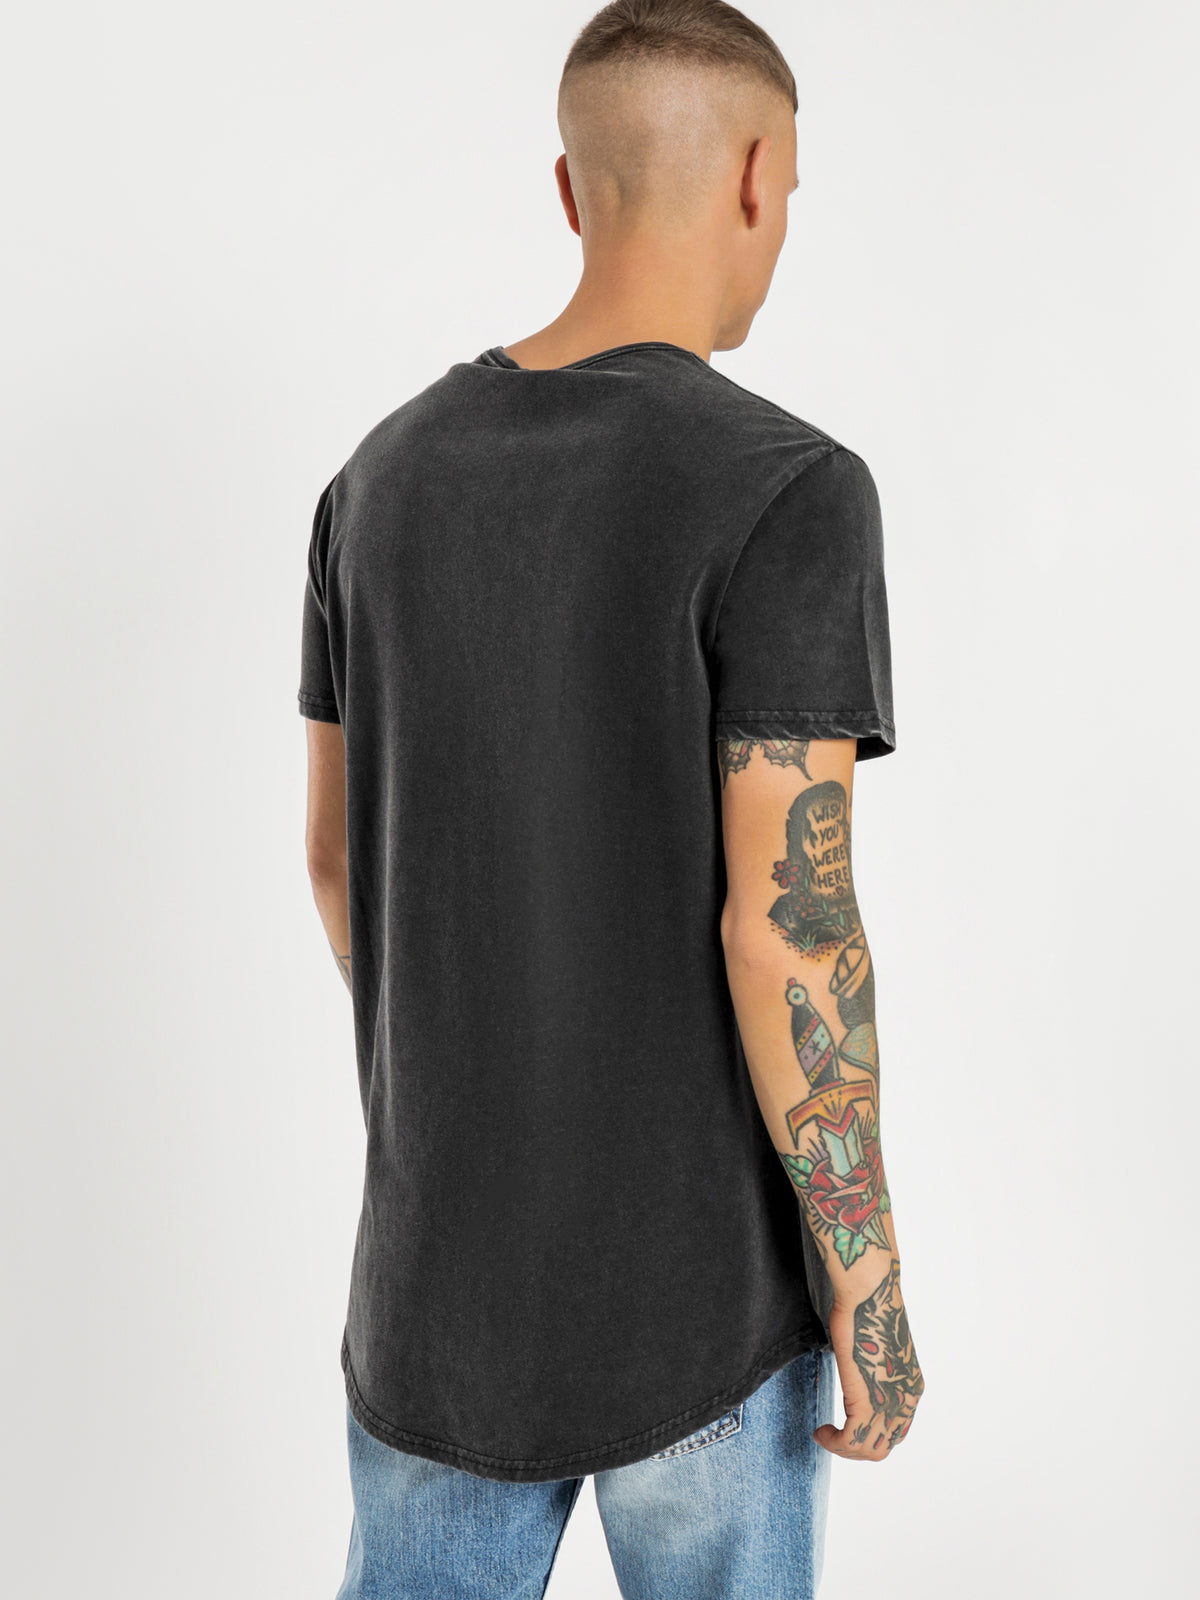 Unplugged T-Shirt in Washed Black